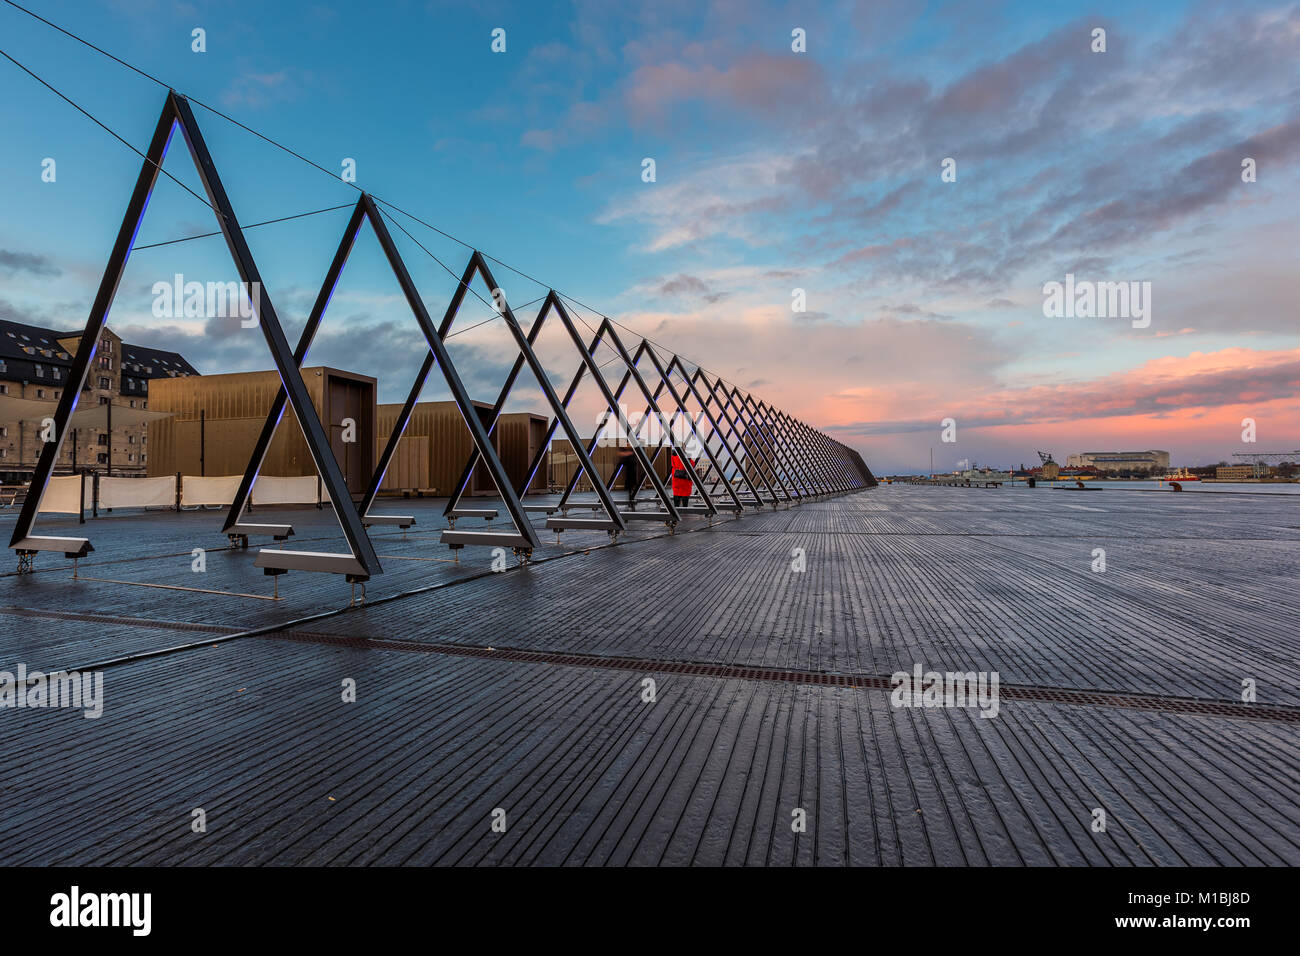 COPENHAGEN, DENMARK - FEBRUARY 28, 2017: The Wave, an interactive sound- and light installation, is spanning 80 - Stock Image